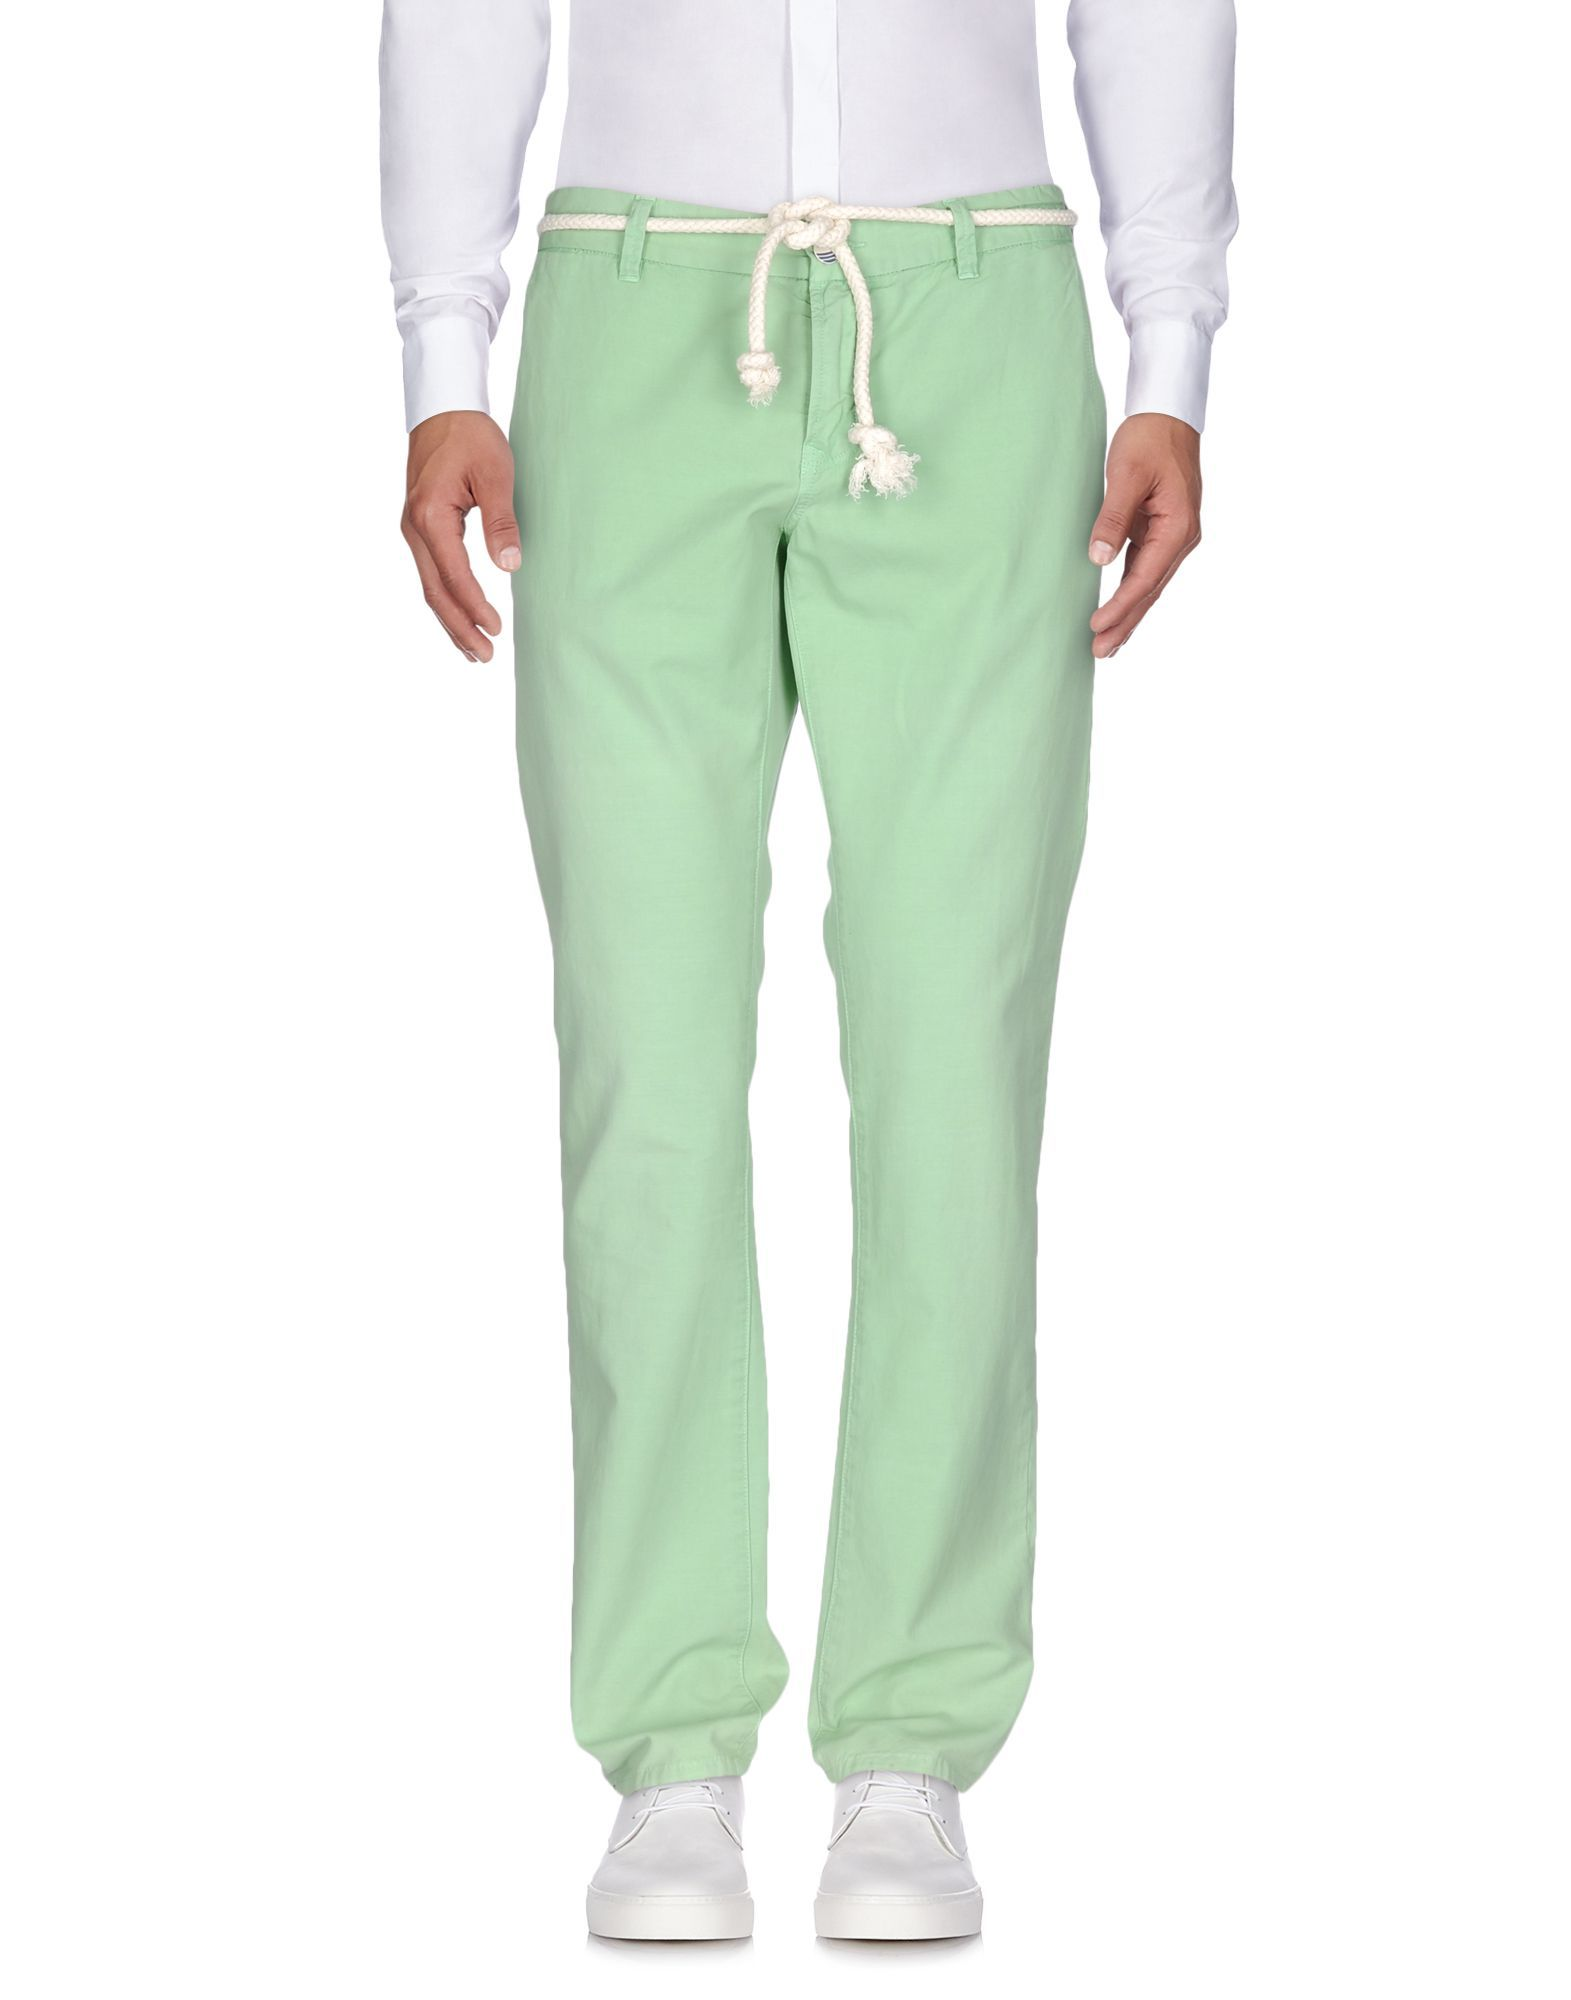 At.P.Co Light Green Cotton Chino Trousers